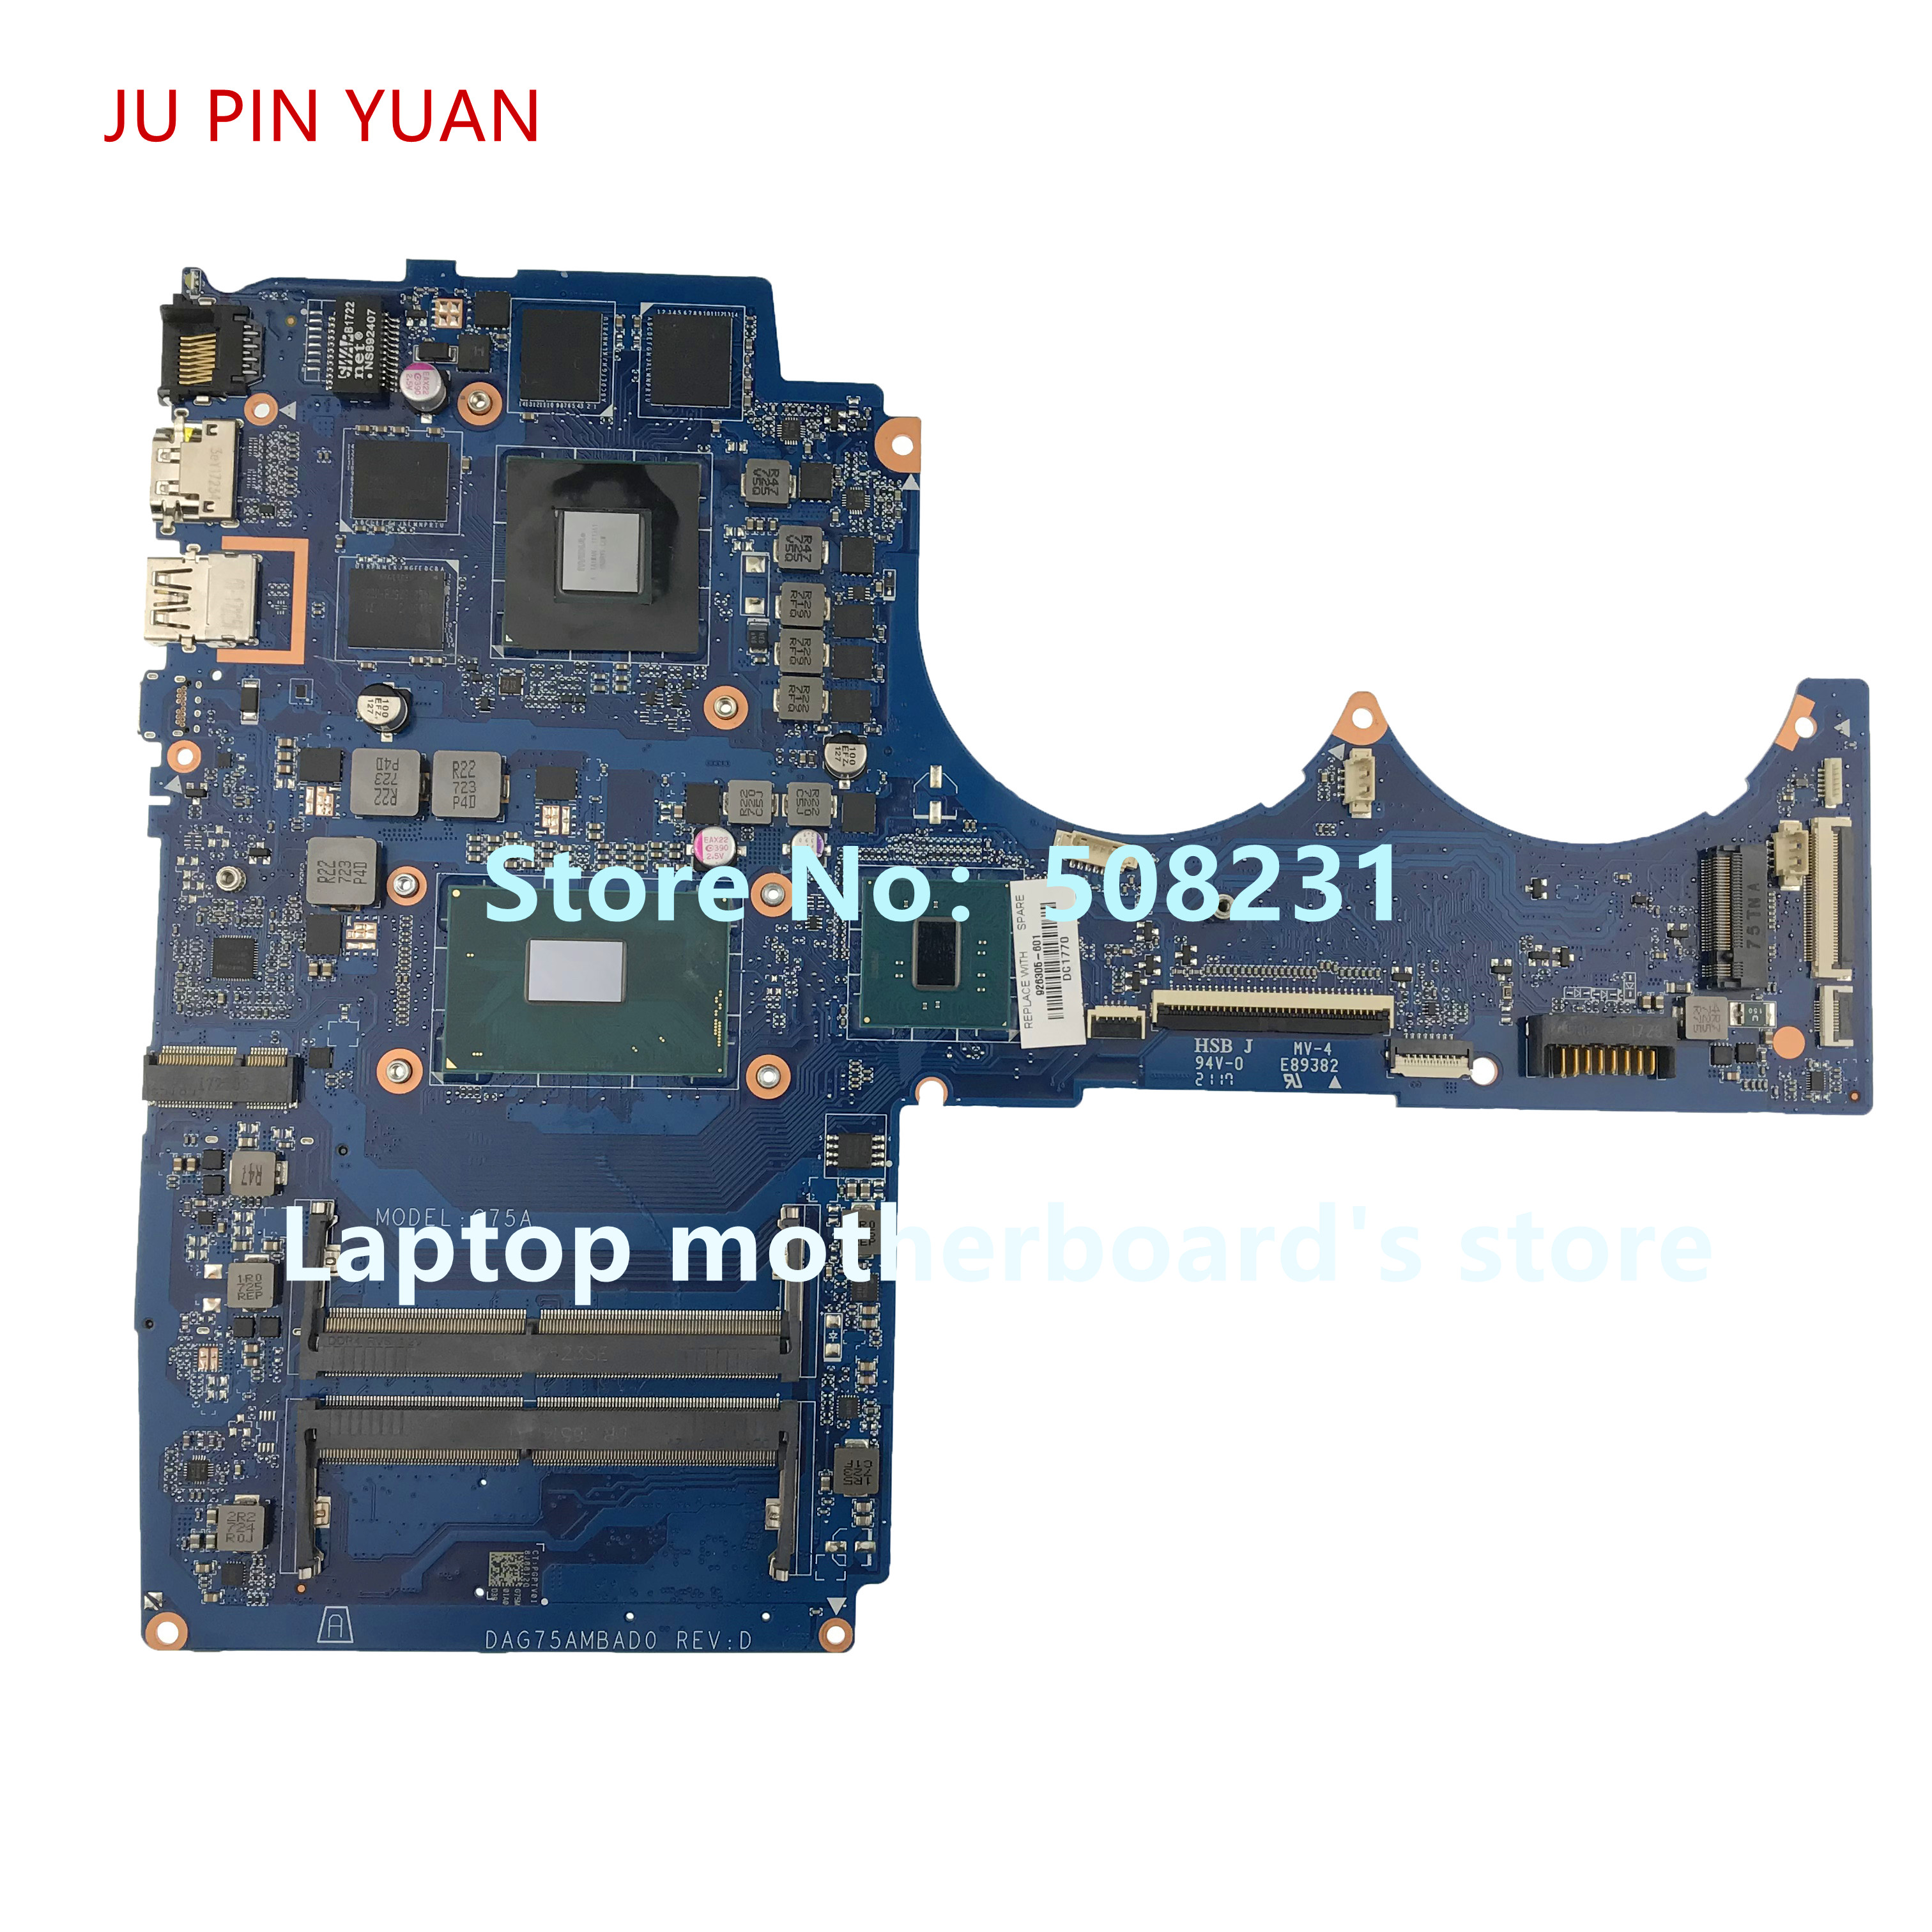 US $428 0 |JU PIN YUAN 926305 601 G75A DAG75AMBAD0 For HP Pavilion Power  Laptop 15 CB Laptop Motherboard GTX1050 4GB i7 7700 fully Tested-in Laptop